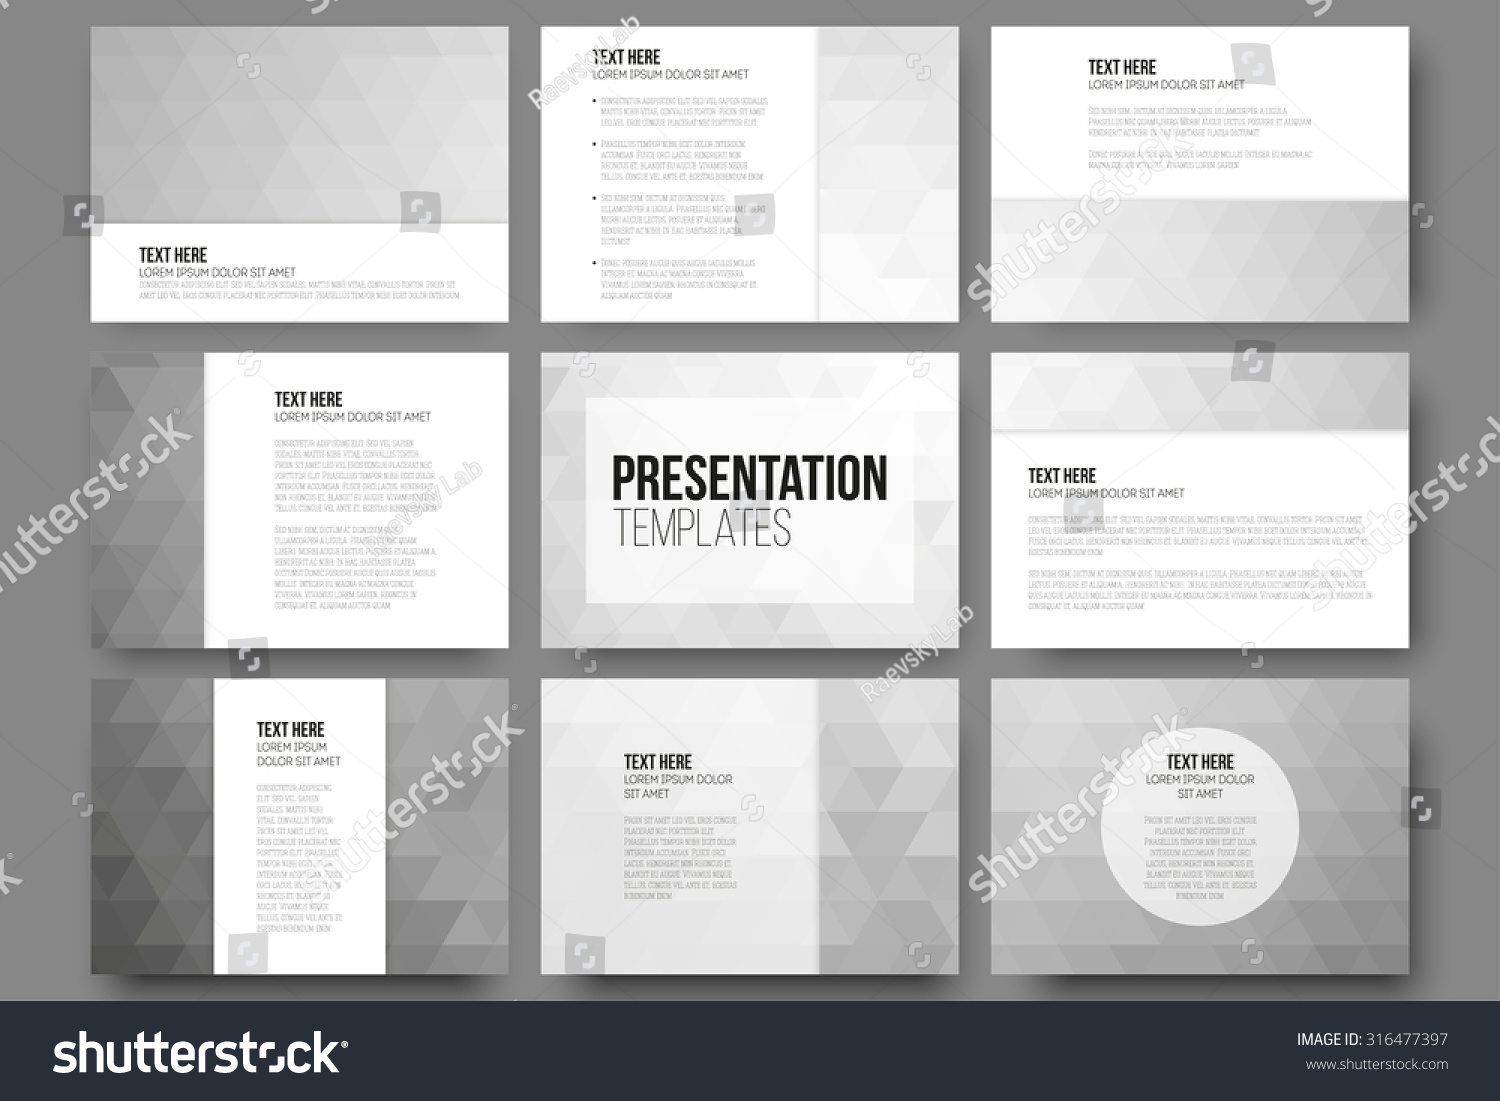 Set of 9 templates for presentation slides Abstract gray backgrounds Triangle design vectors